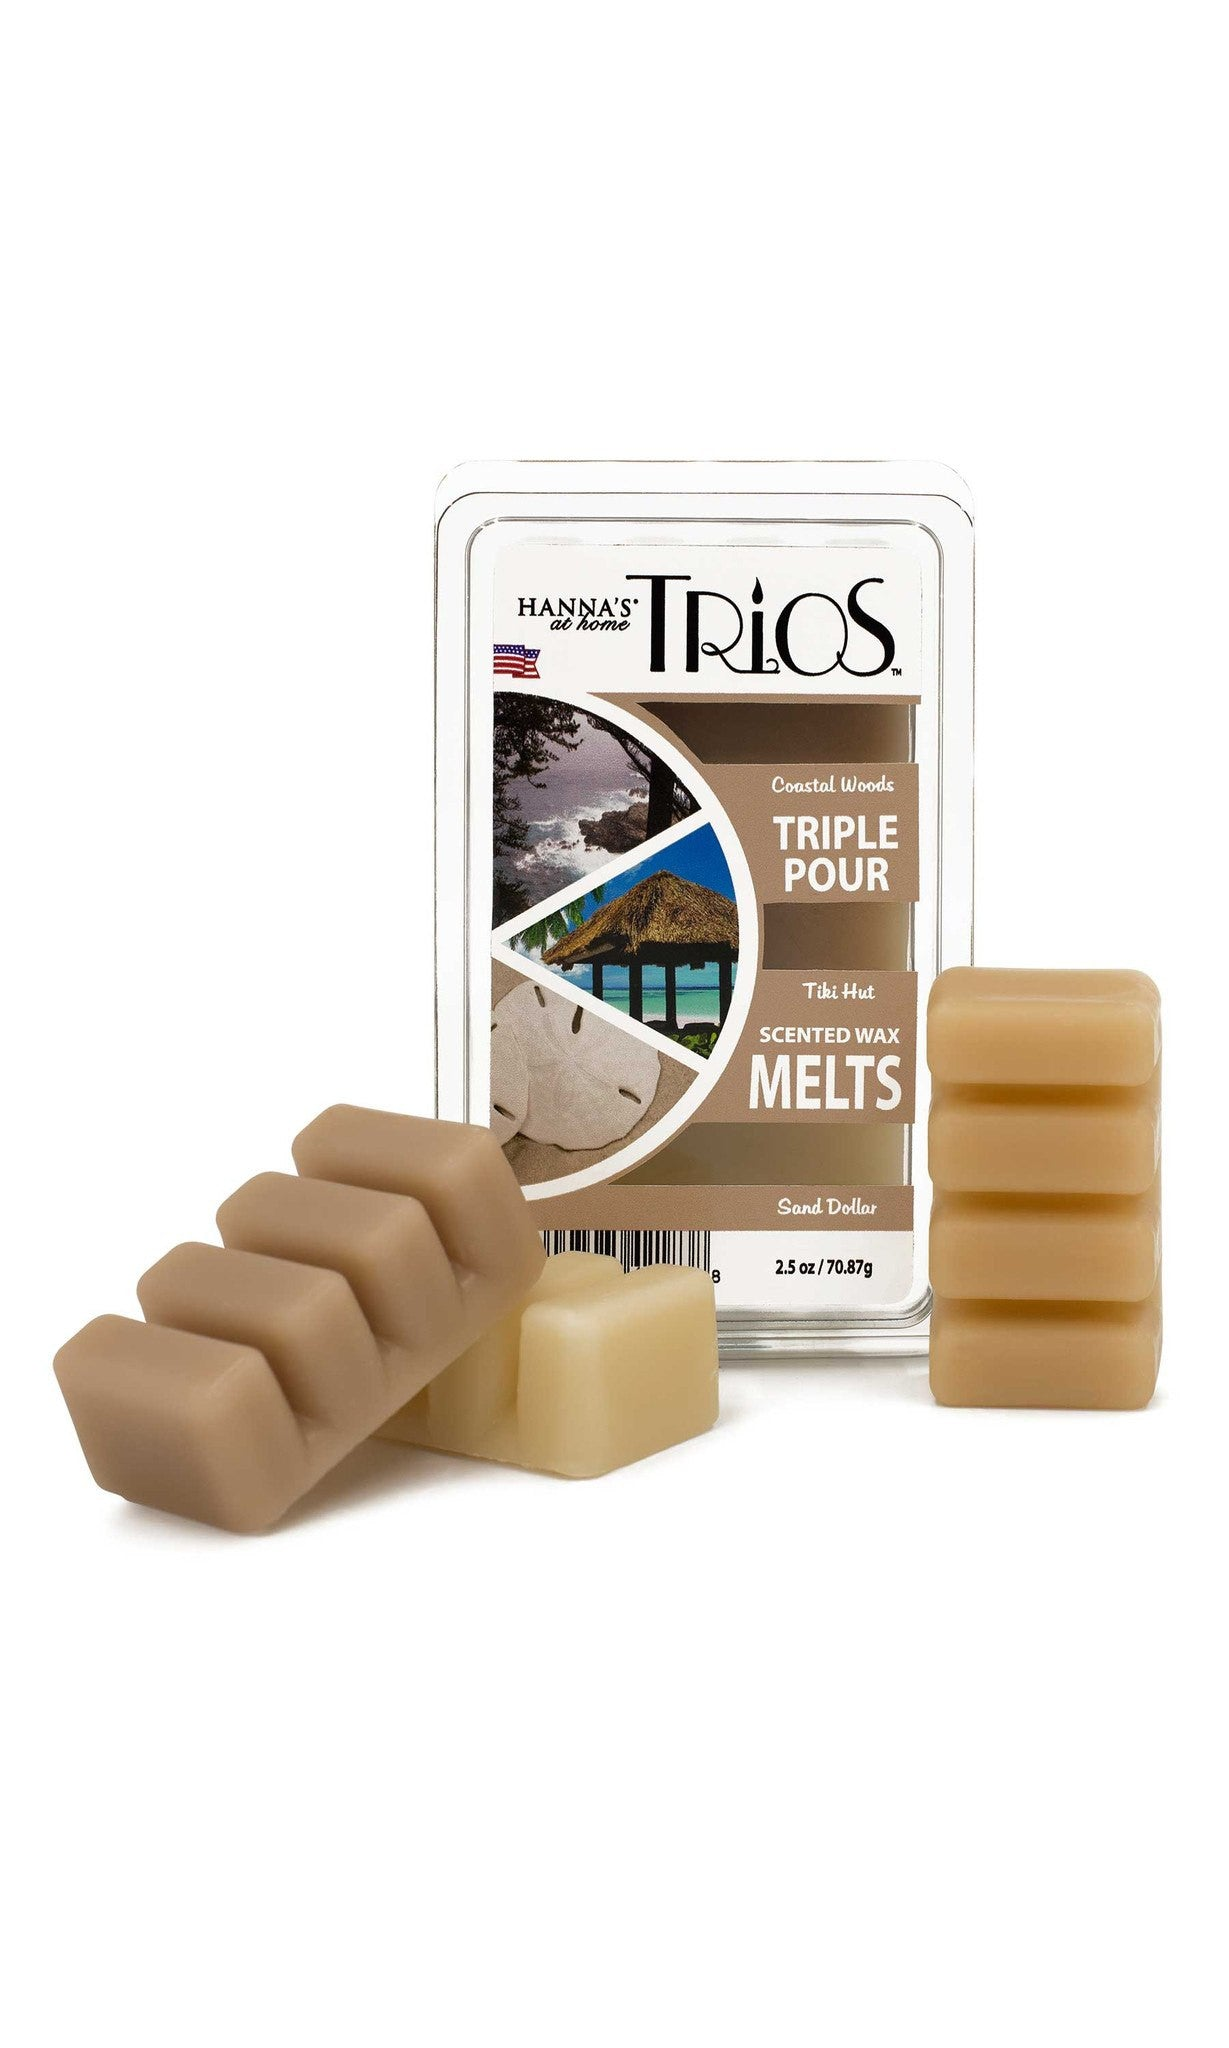 Trios Triple Pour Coastal Woods Scented Wax Melts - Candlemart.com - 1